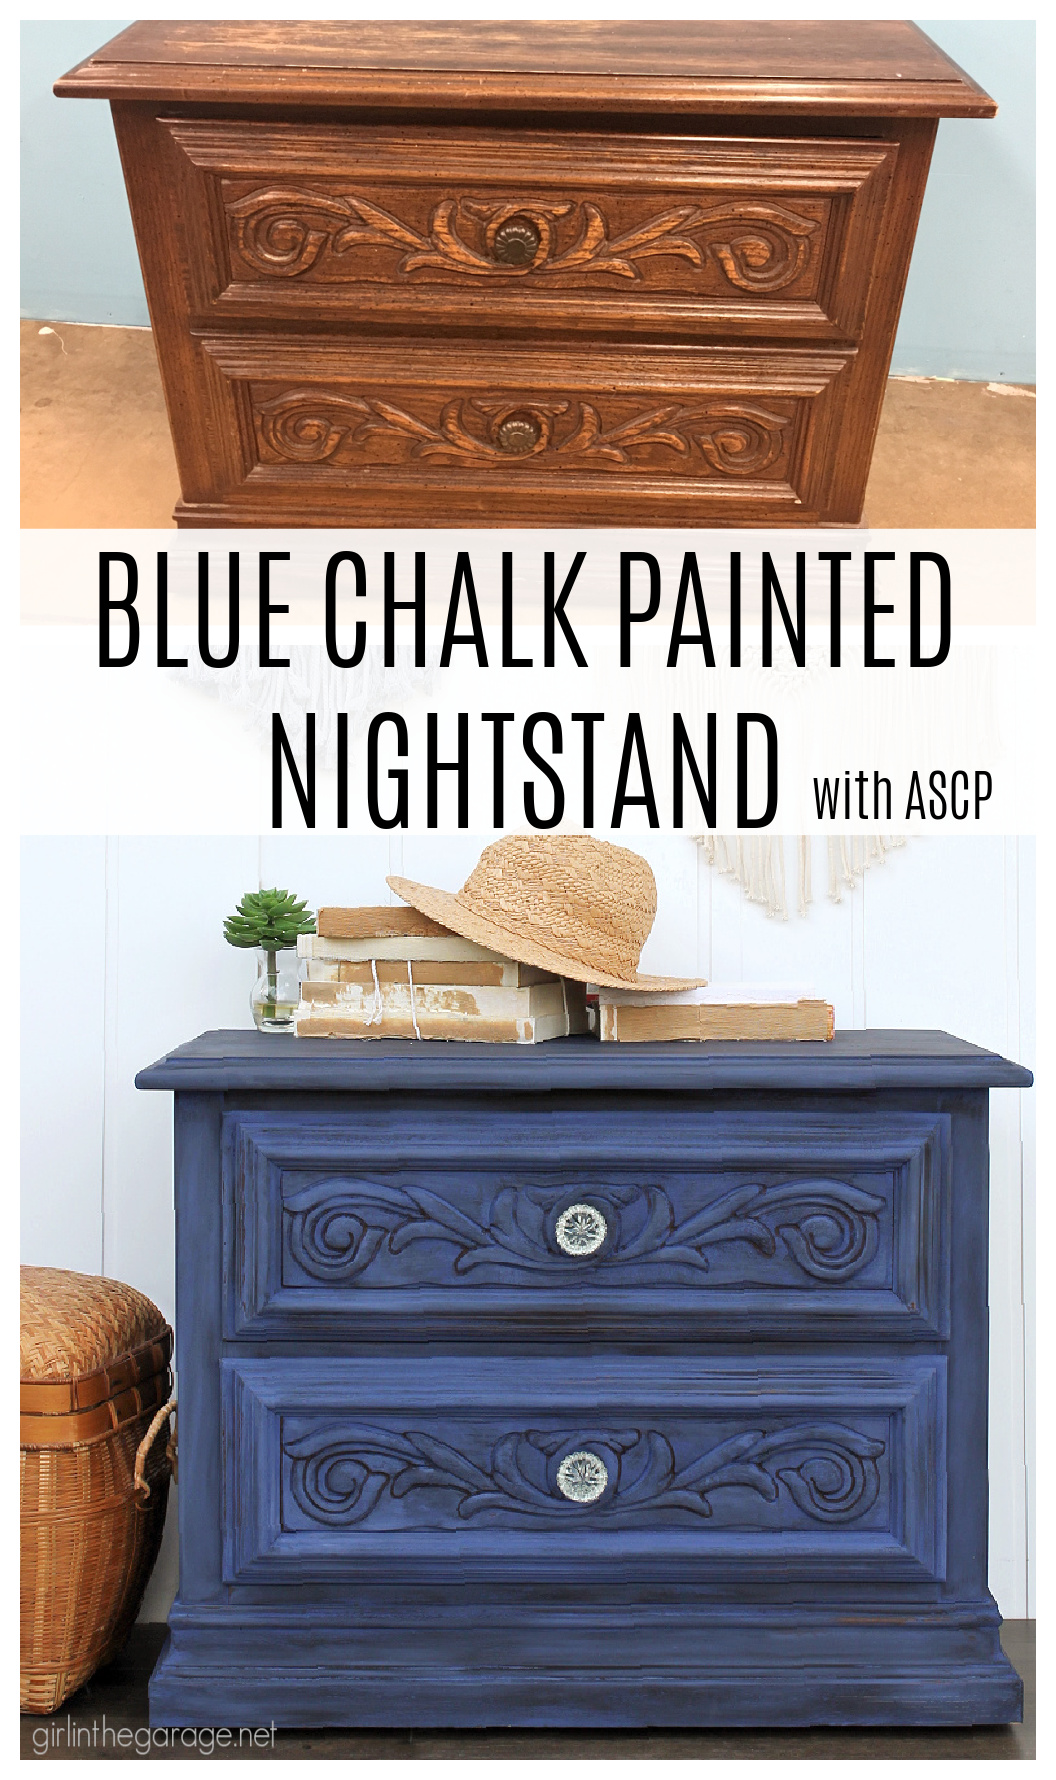 Learn how to create a statement piece with a bold blue Chalk Painted nightstand. DIY painted furniture ideas by Girl in the Garage